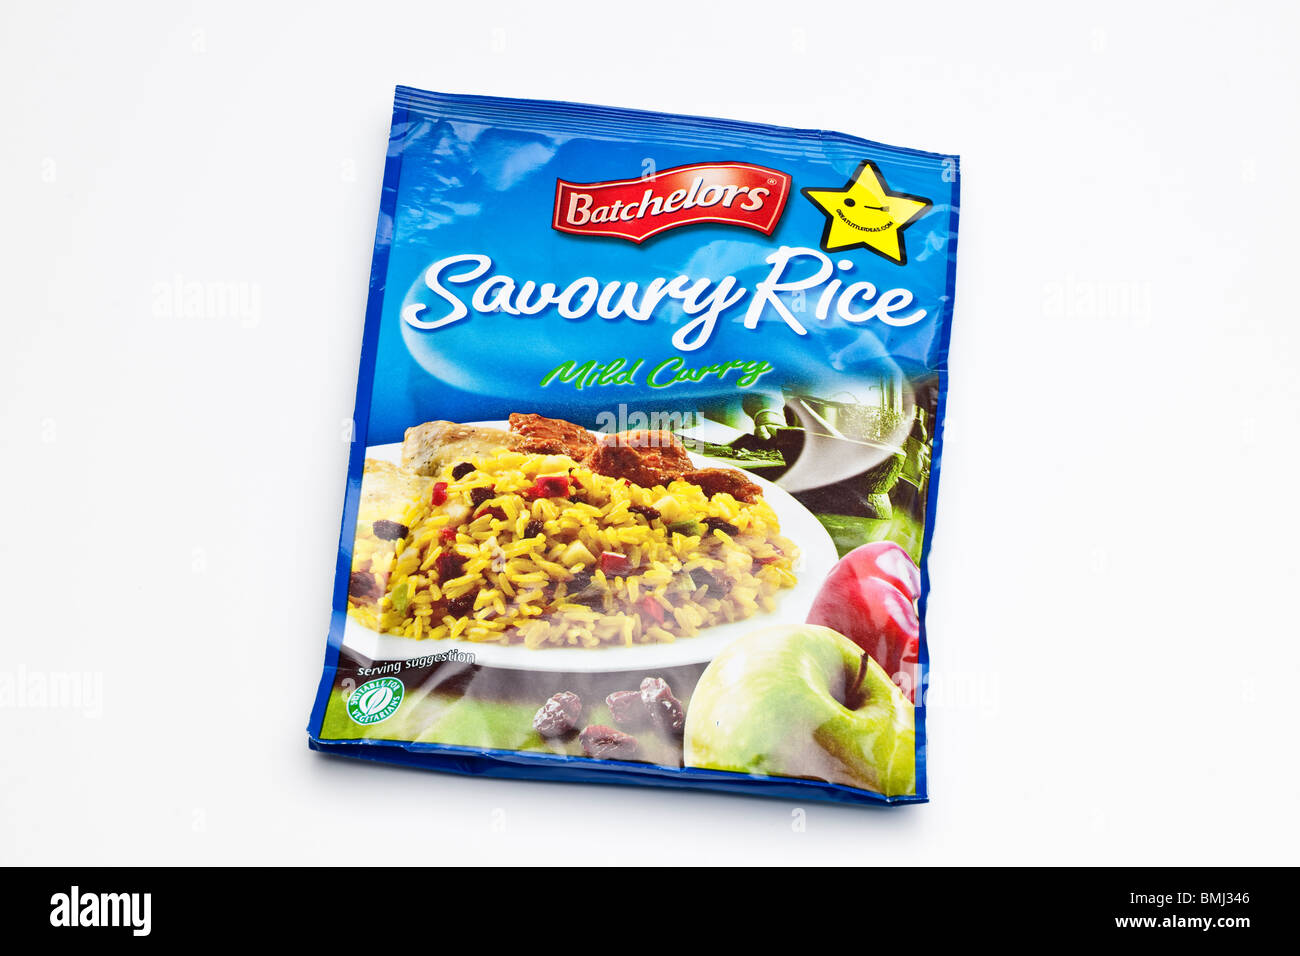 Packet of Bachelors Savoury rice mild curry flavour - Stock Image